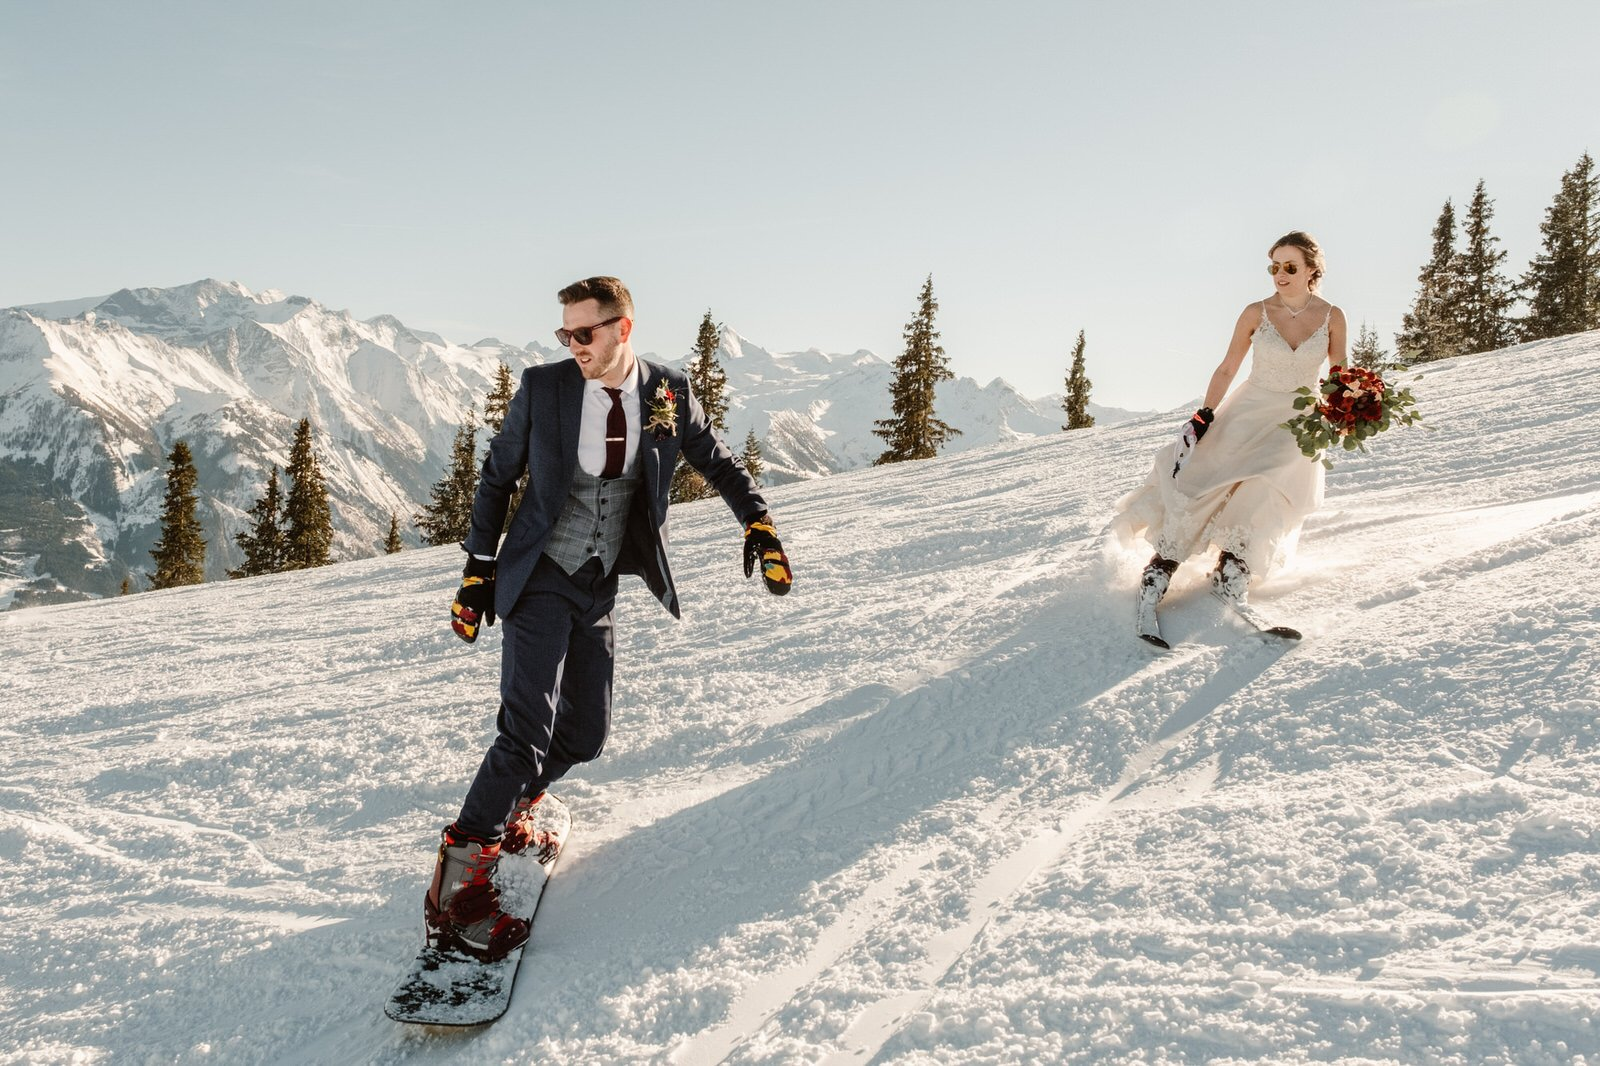 winter wedding photo ideas with couple skiing.